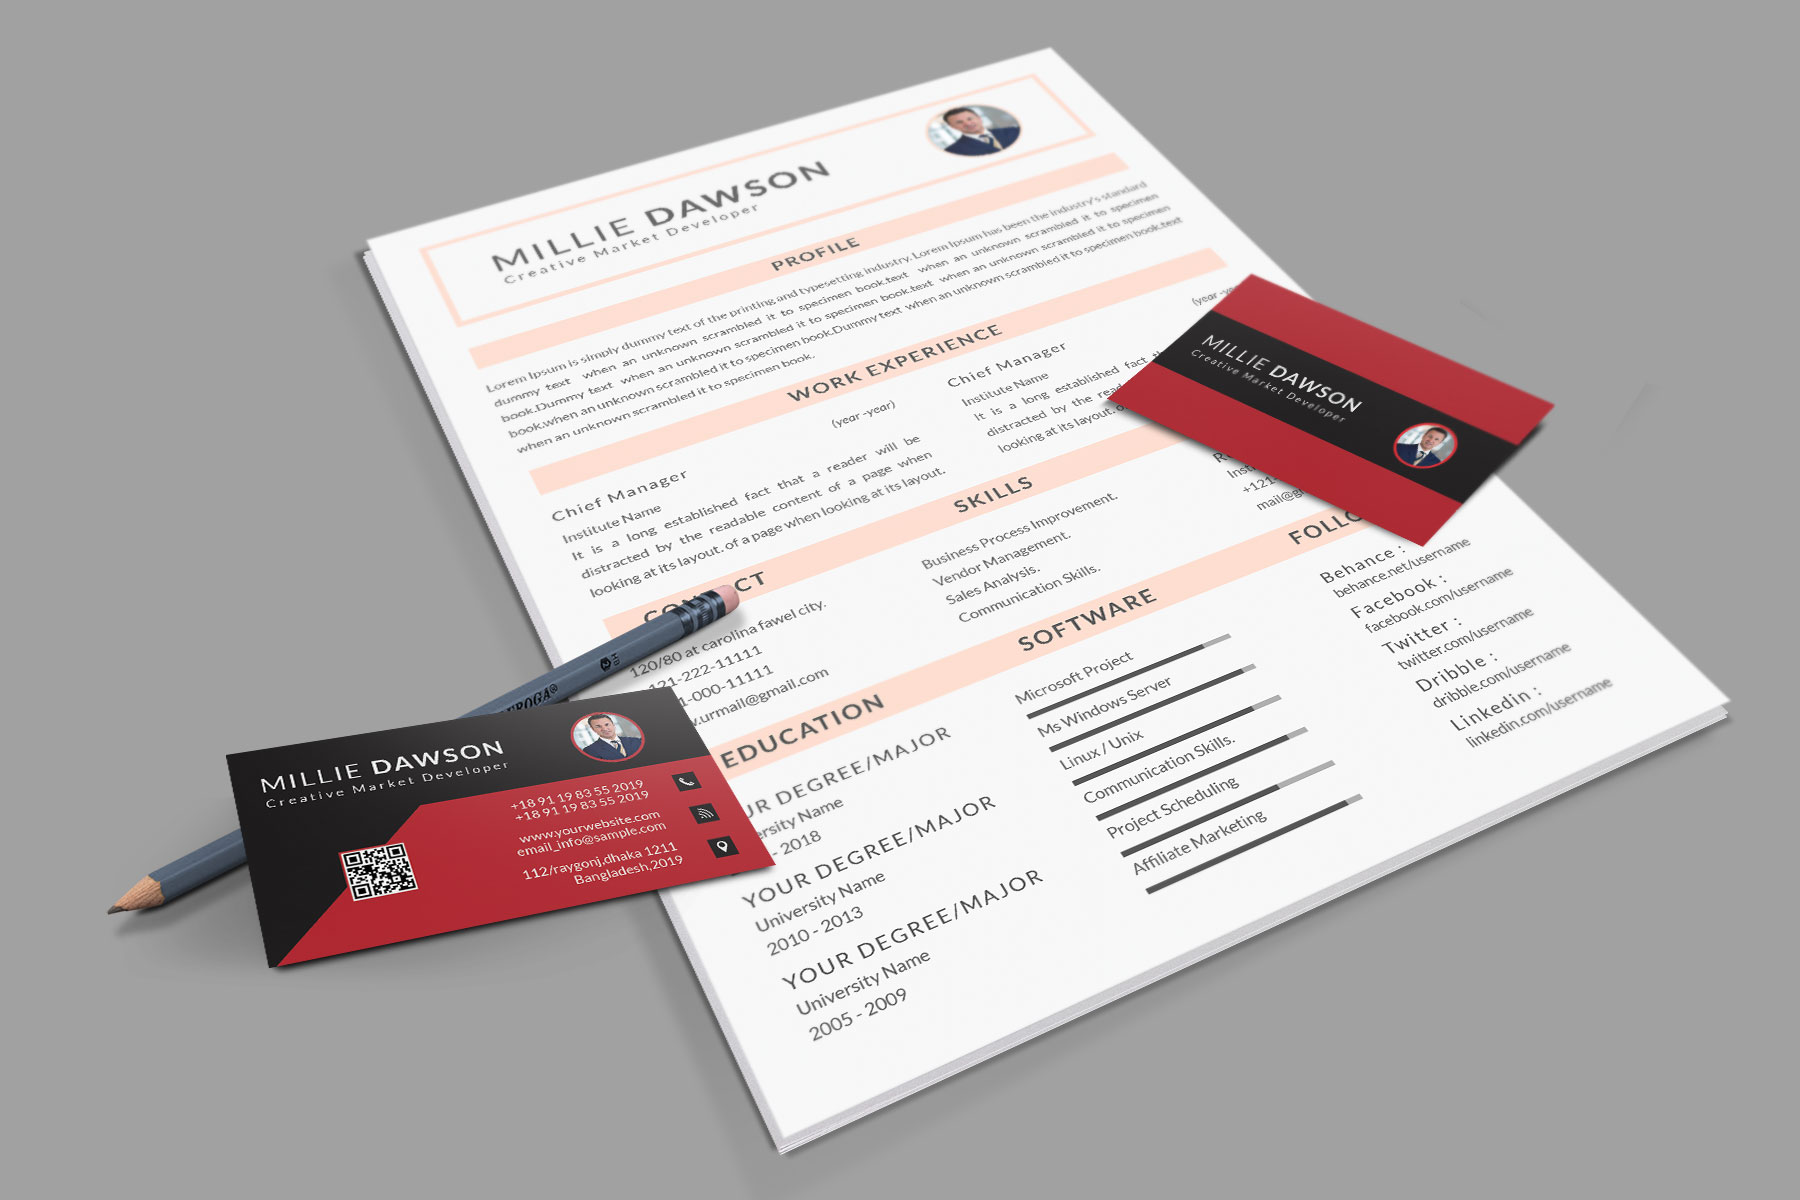 Professional Cv Resume Bonus business card Word/PSD,AI example image 3